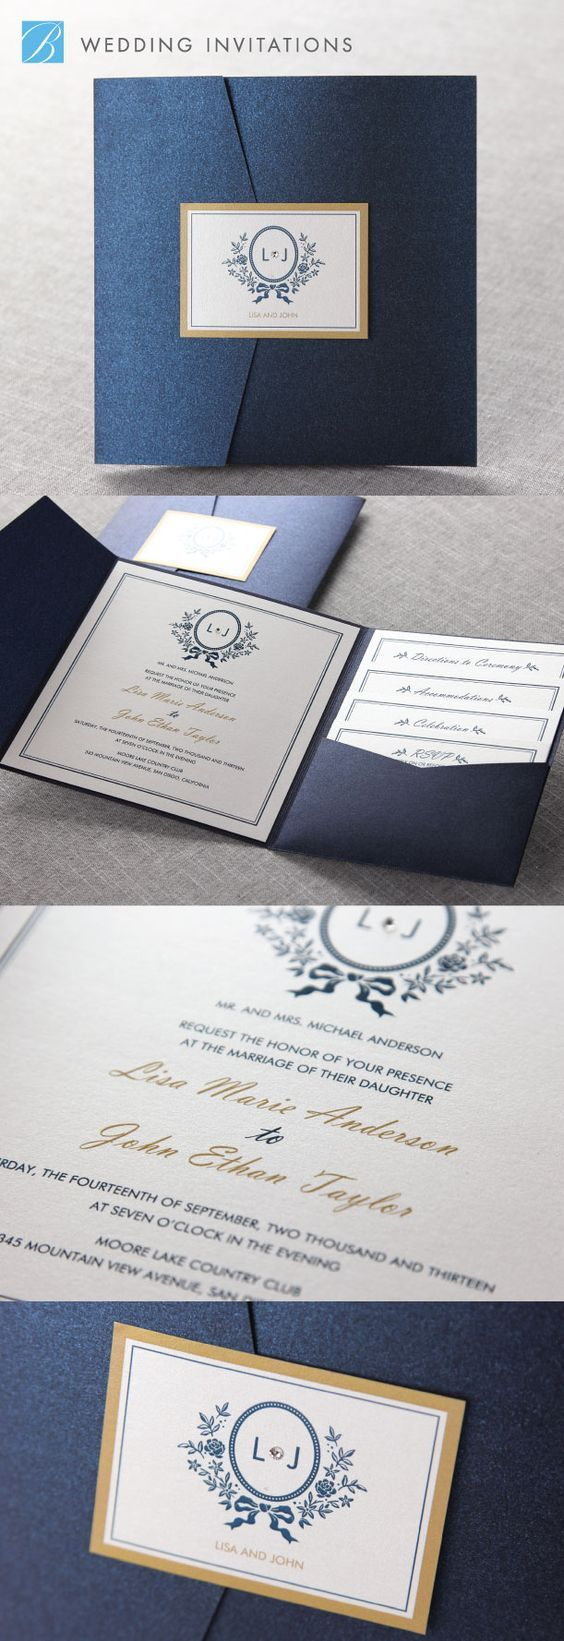 European Wedding Invitations Elegant Wedding Invitations Beautiful